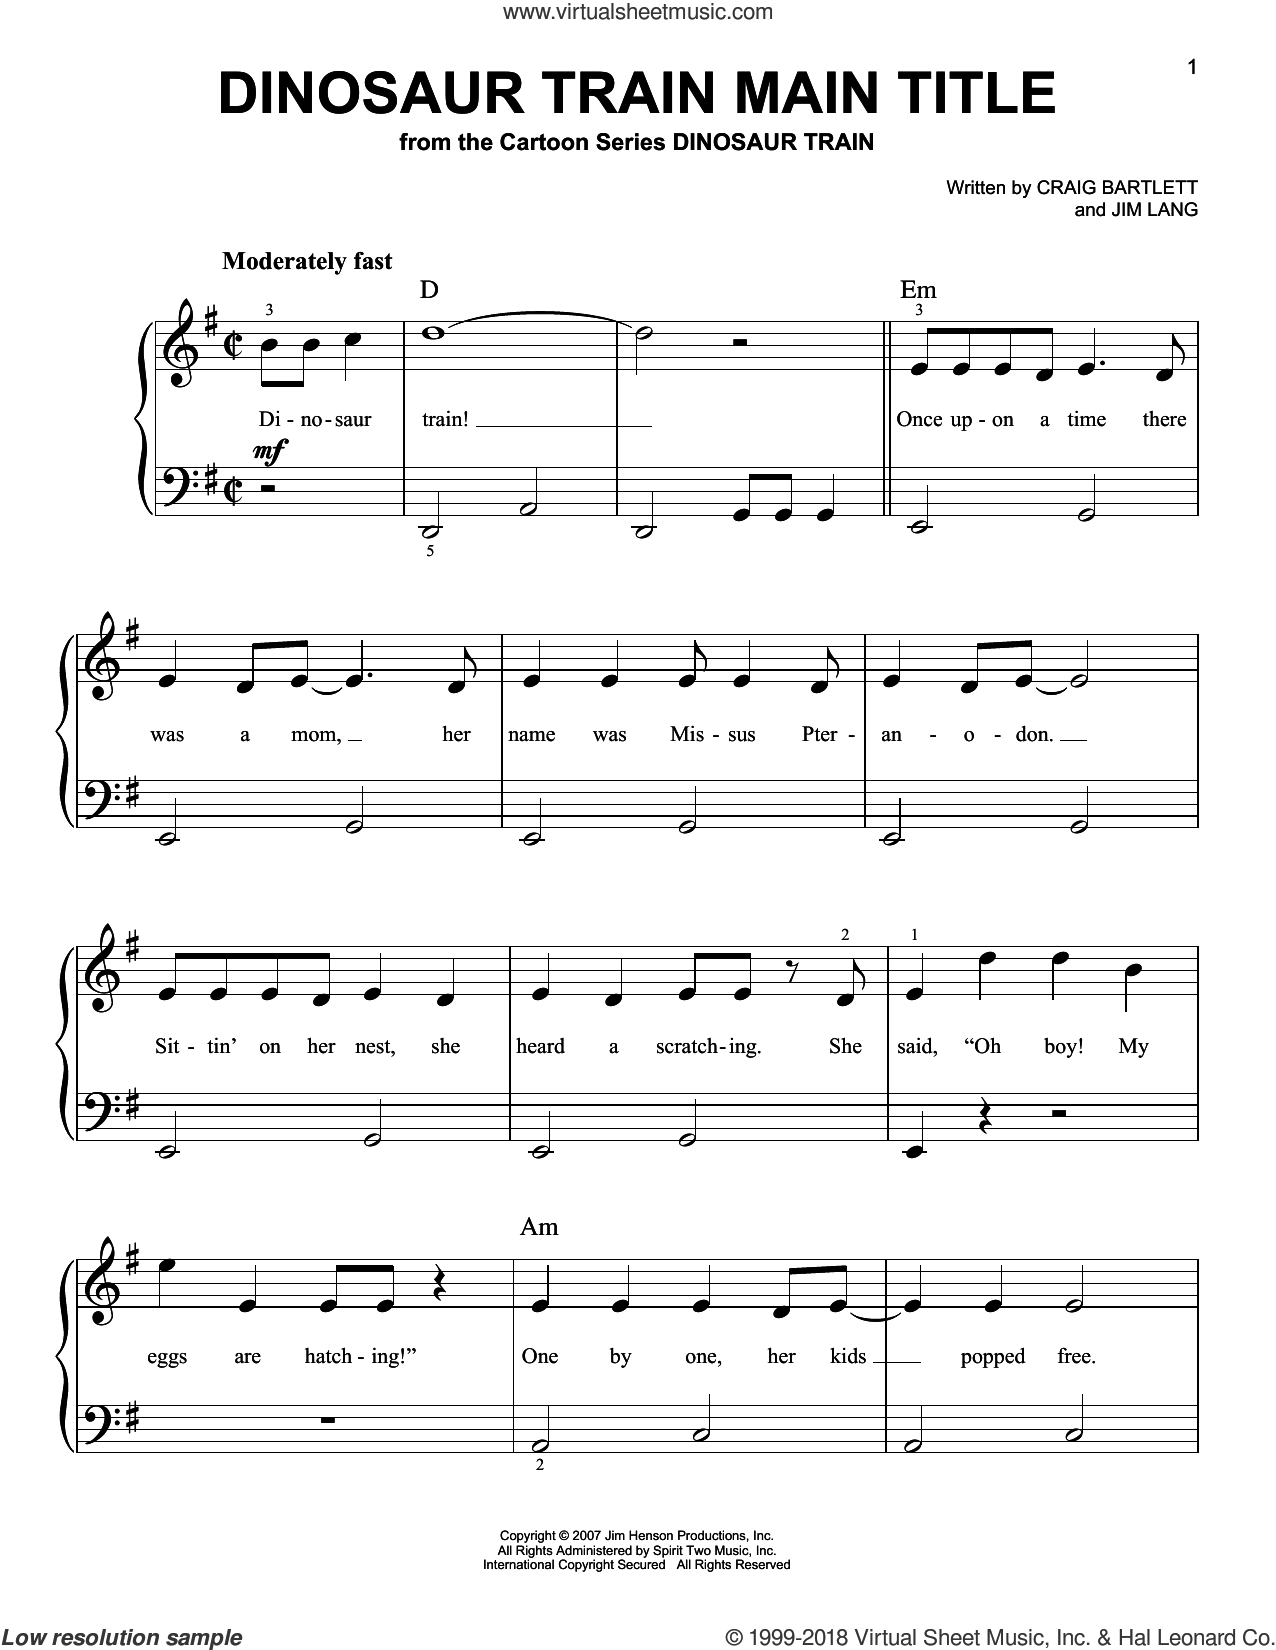 Dinosaur Train Main Title sheet music for piano solo by Craig Bartlett and Jim Lang, easy skill level